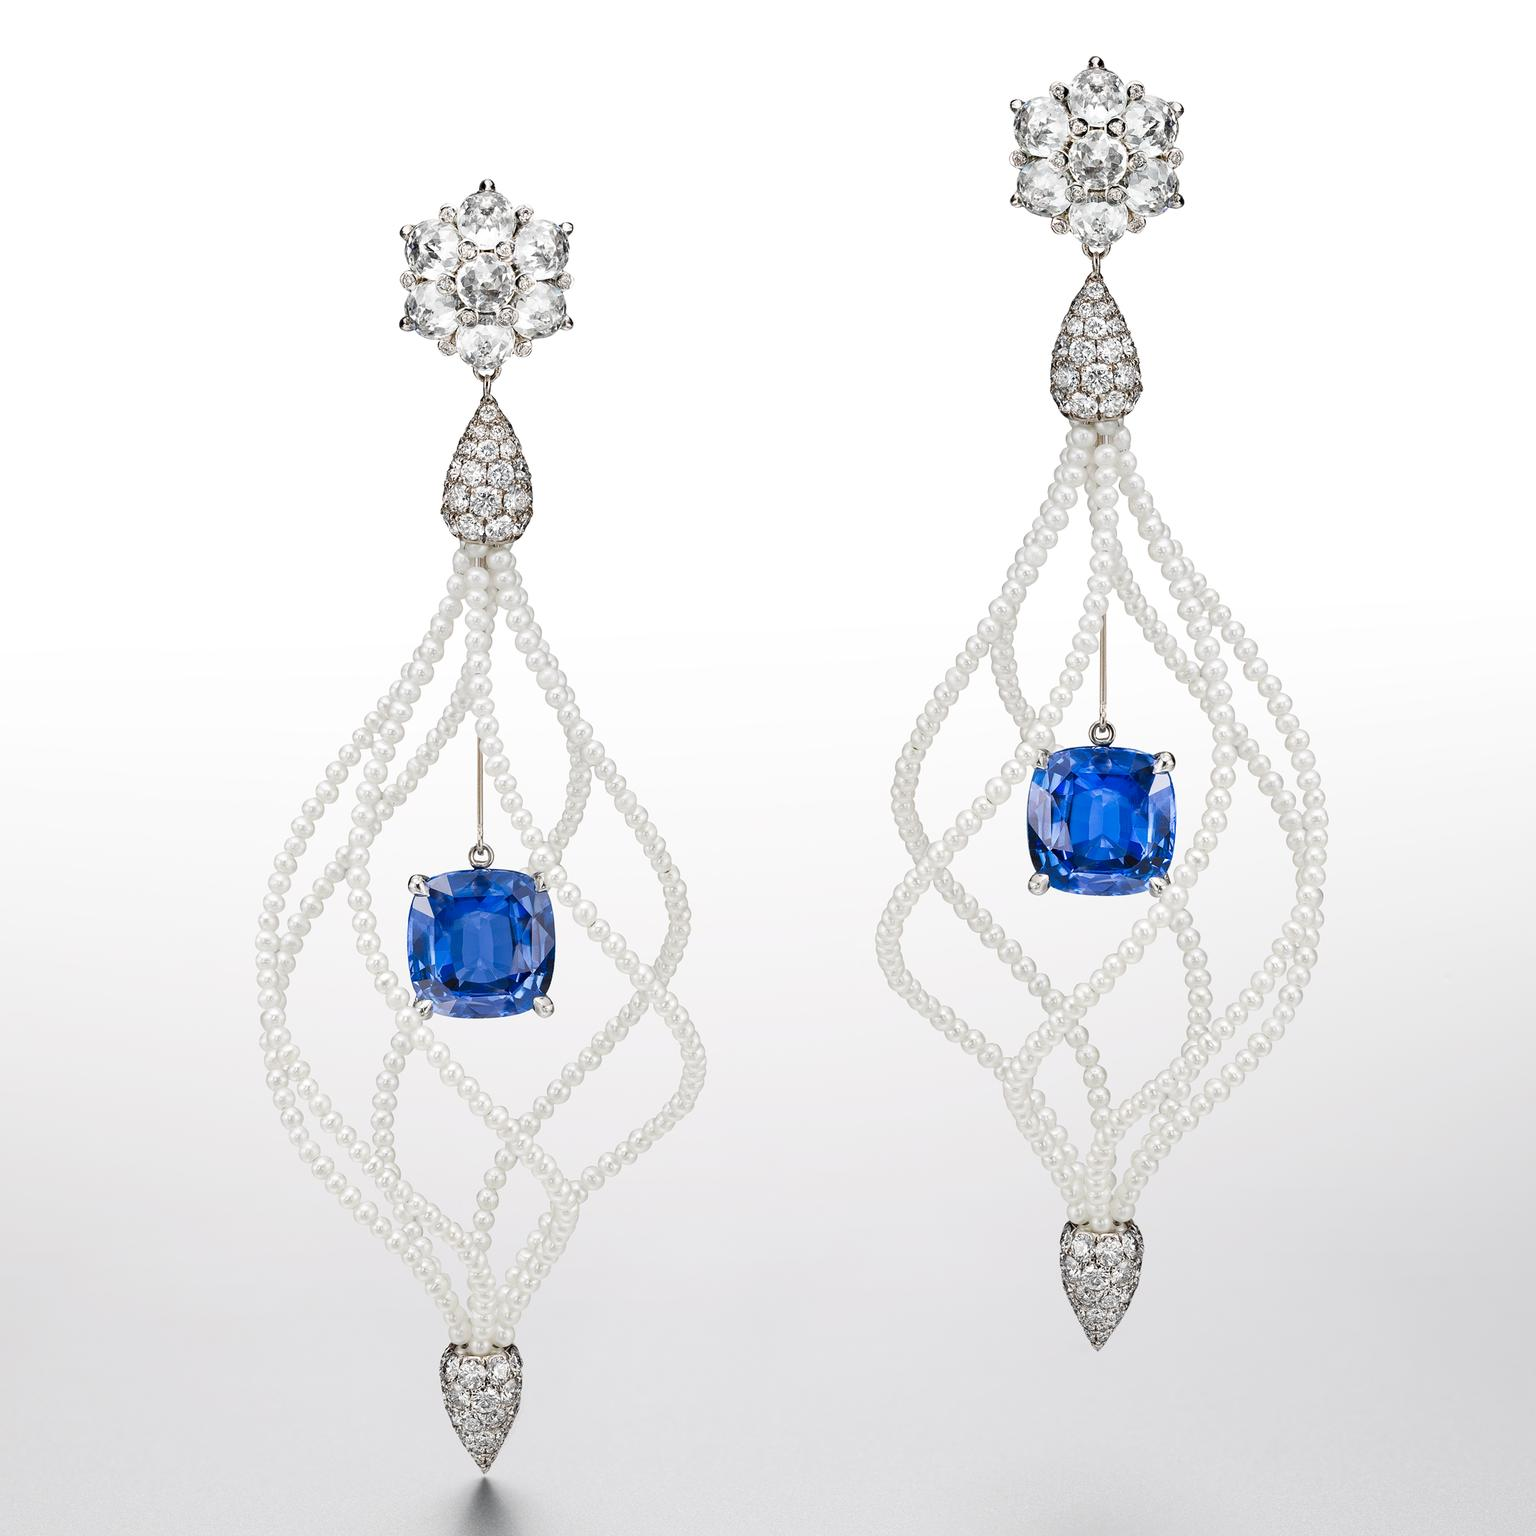 Suzanne Syz Lady Hamilton earrings with Ceylon sapphires, diamonds and pearls